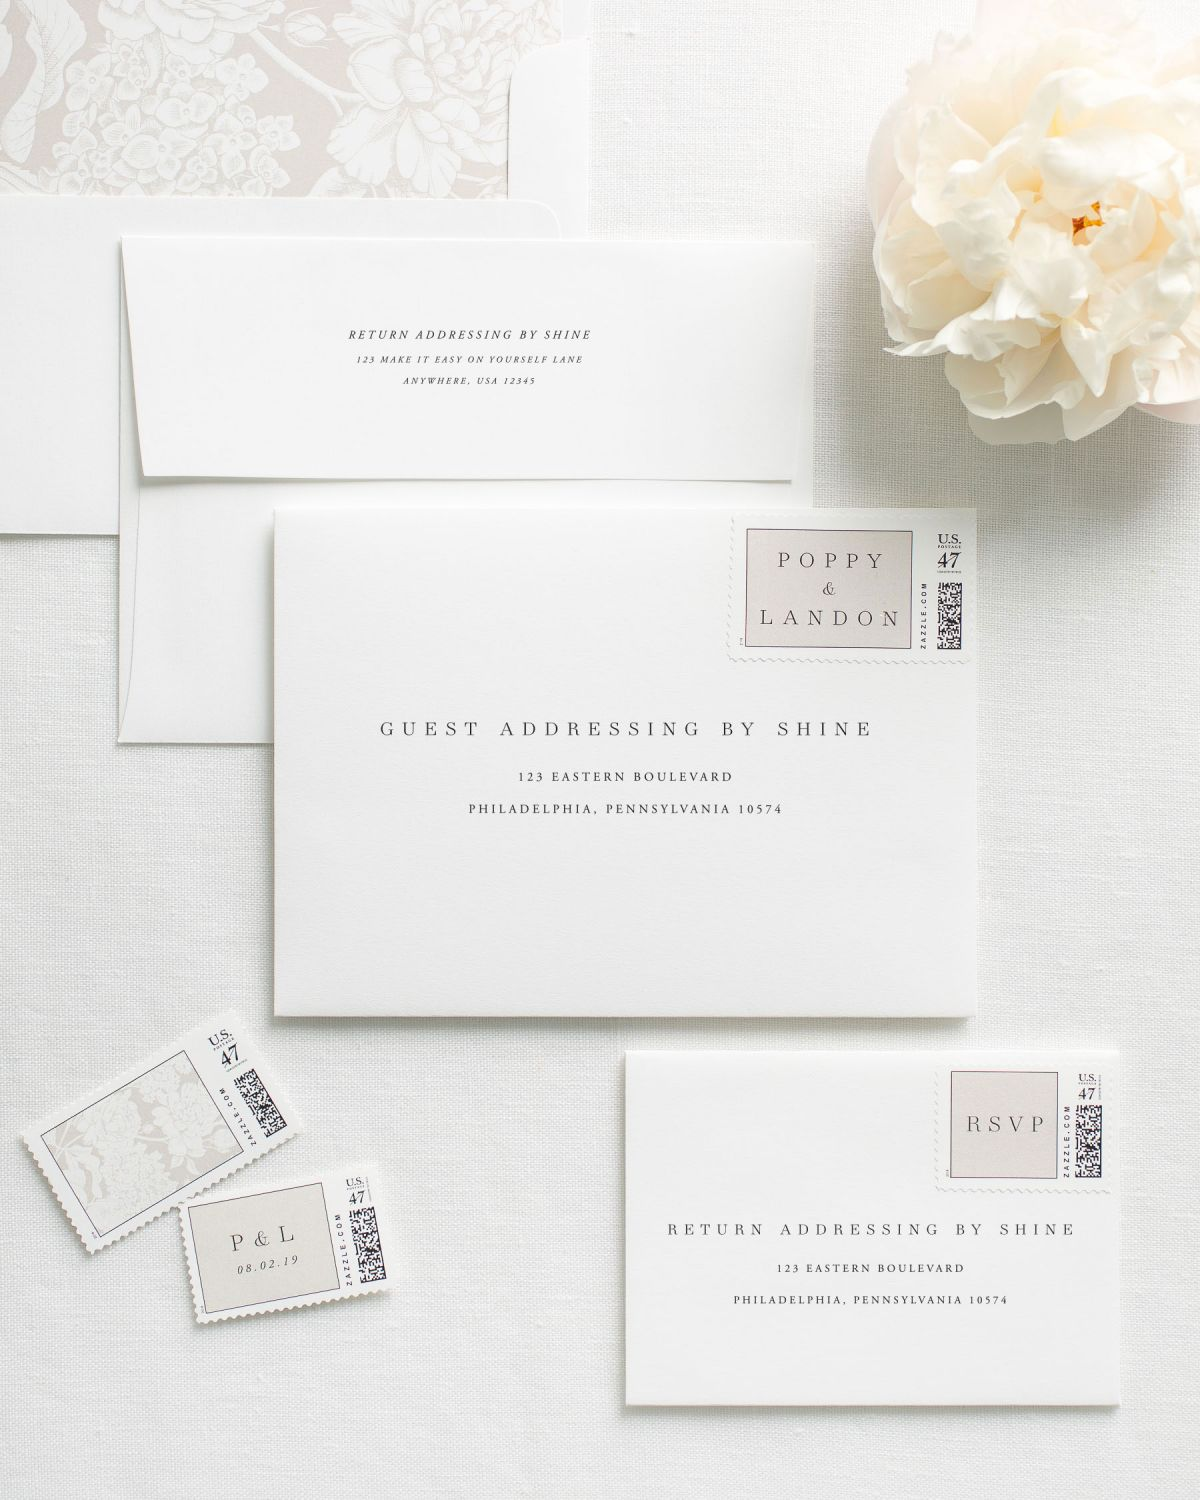 Personalized Envelope Printing for Wedding Invitations